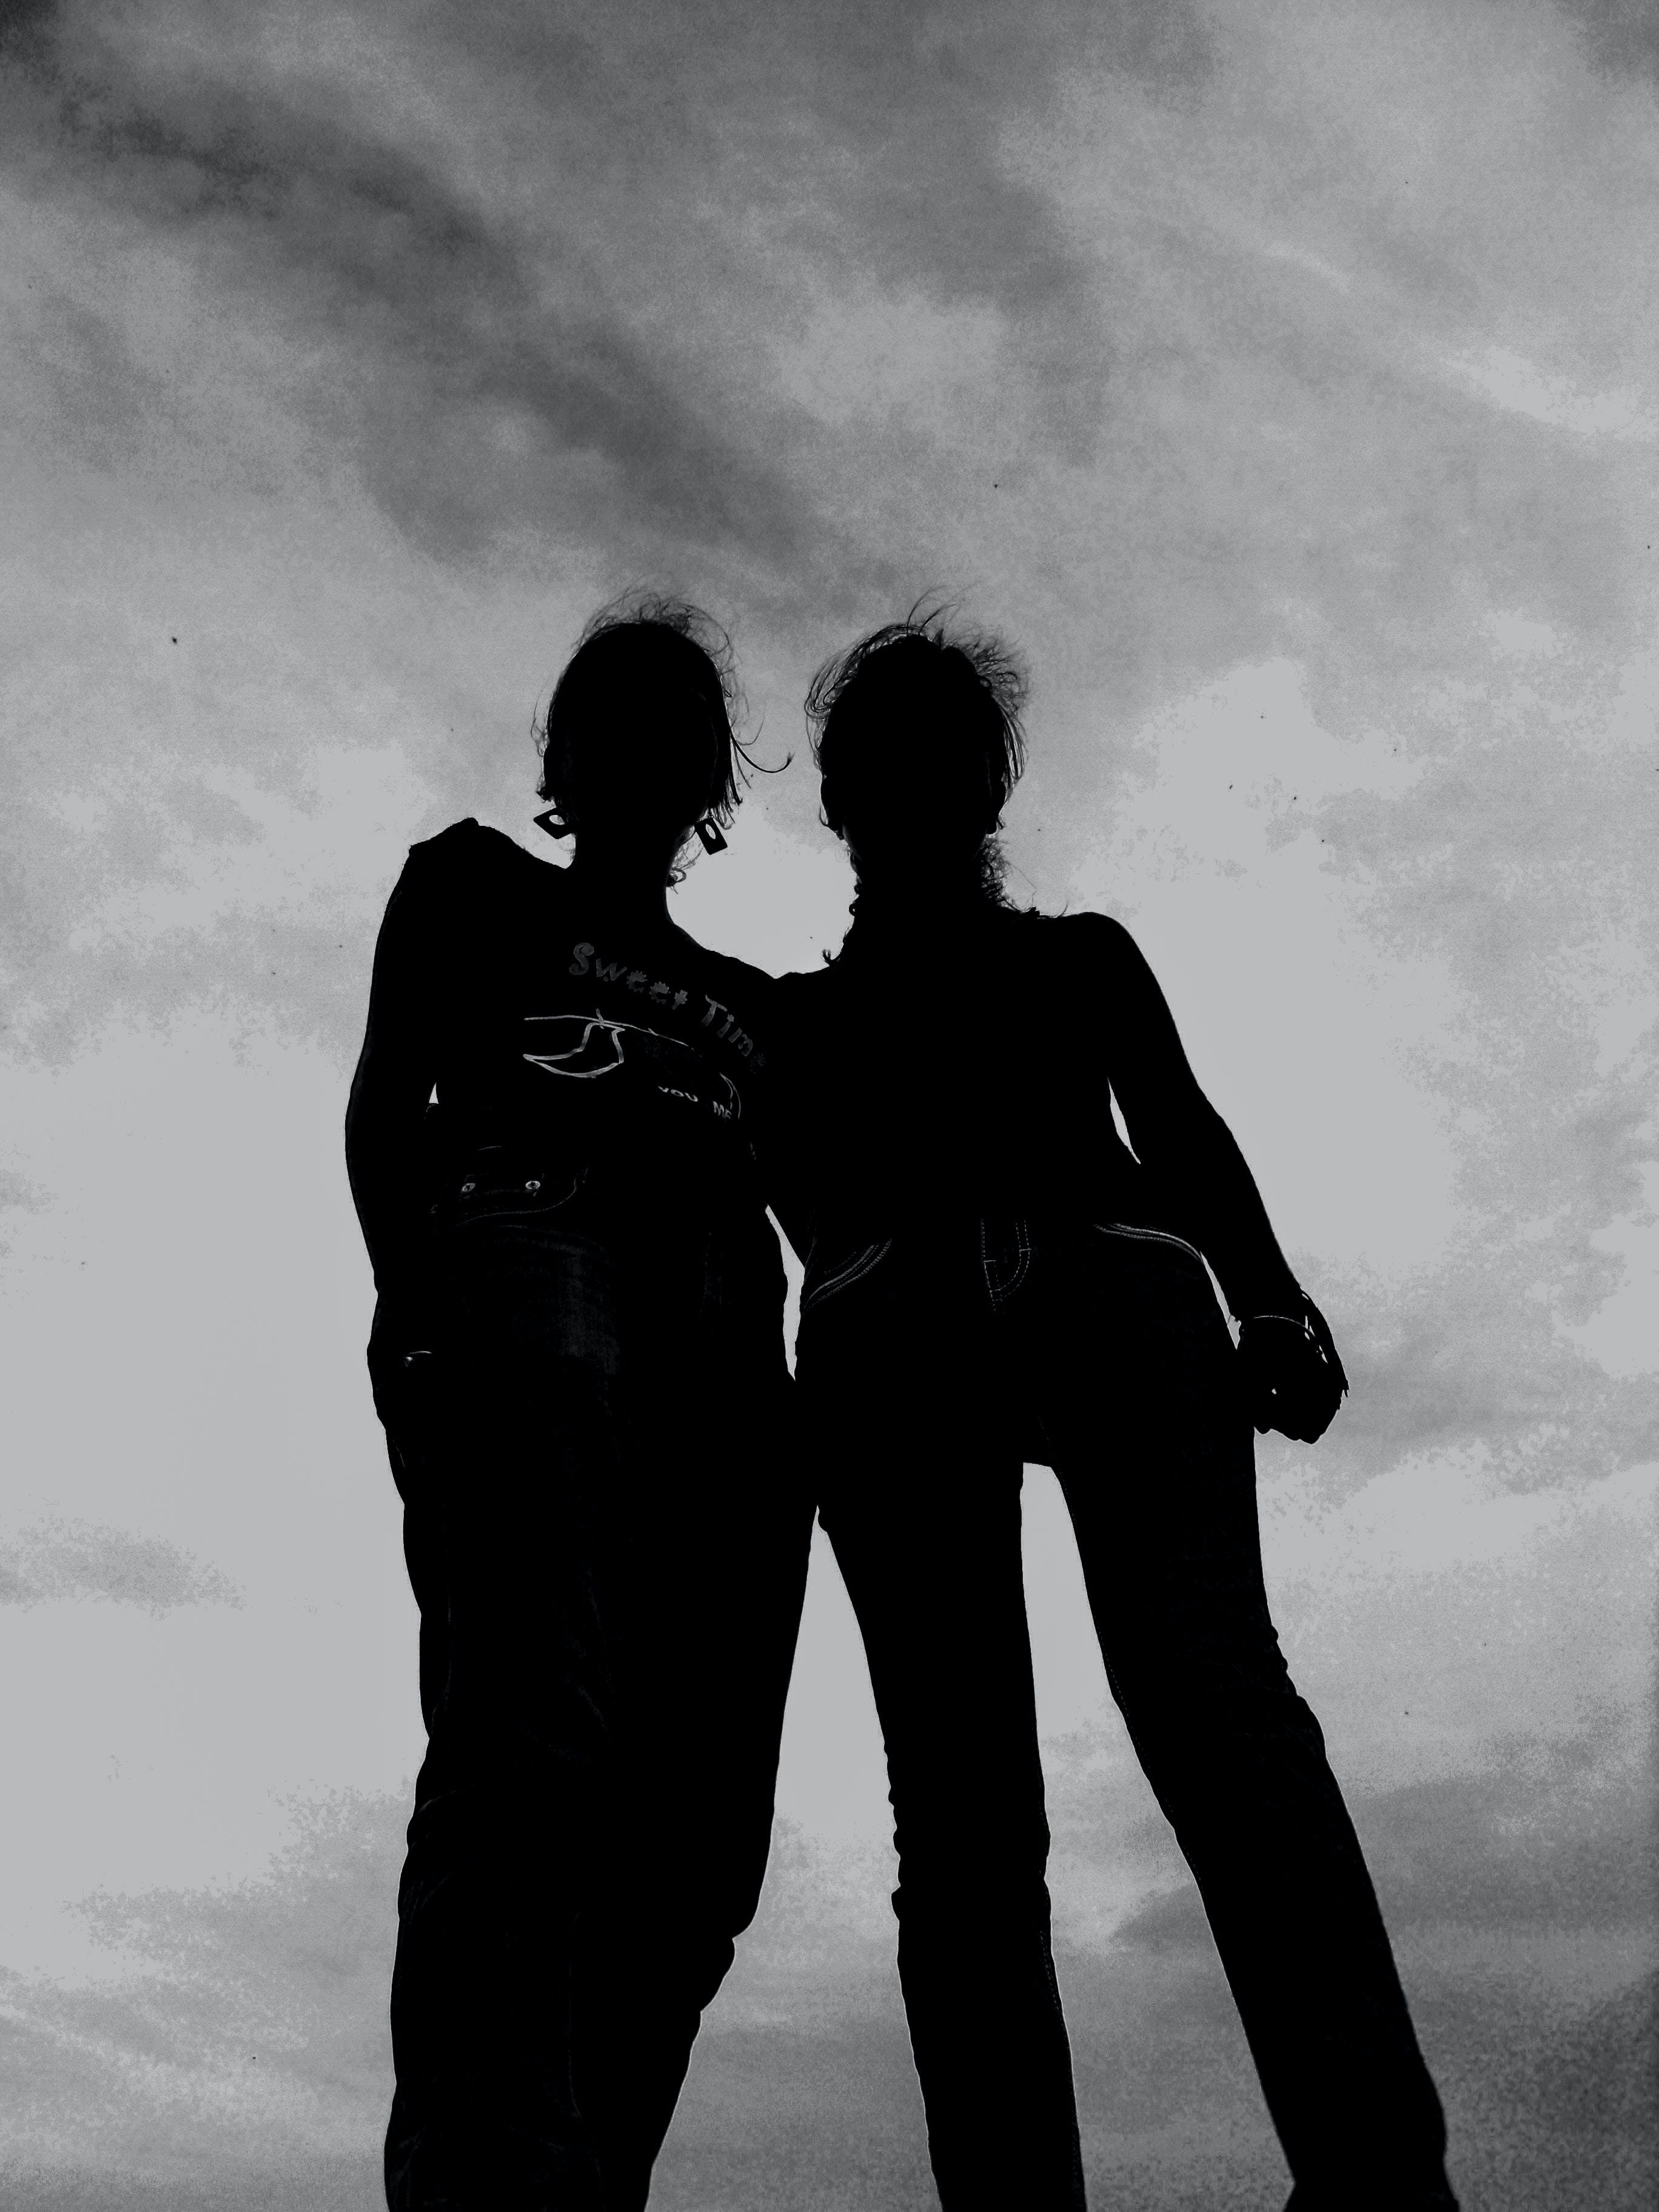 Silhouette Photography of 2 Persons